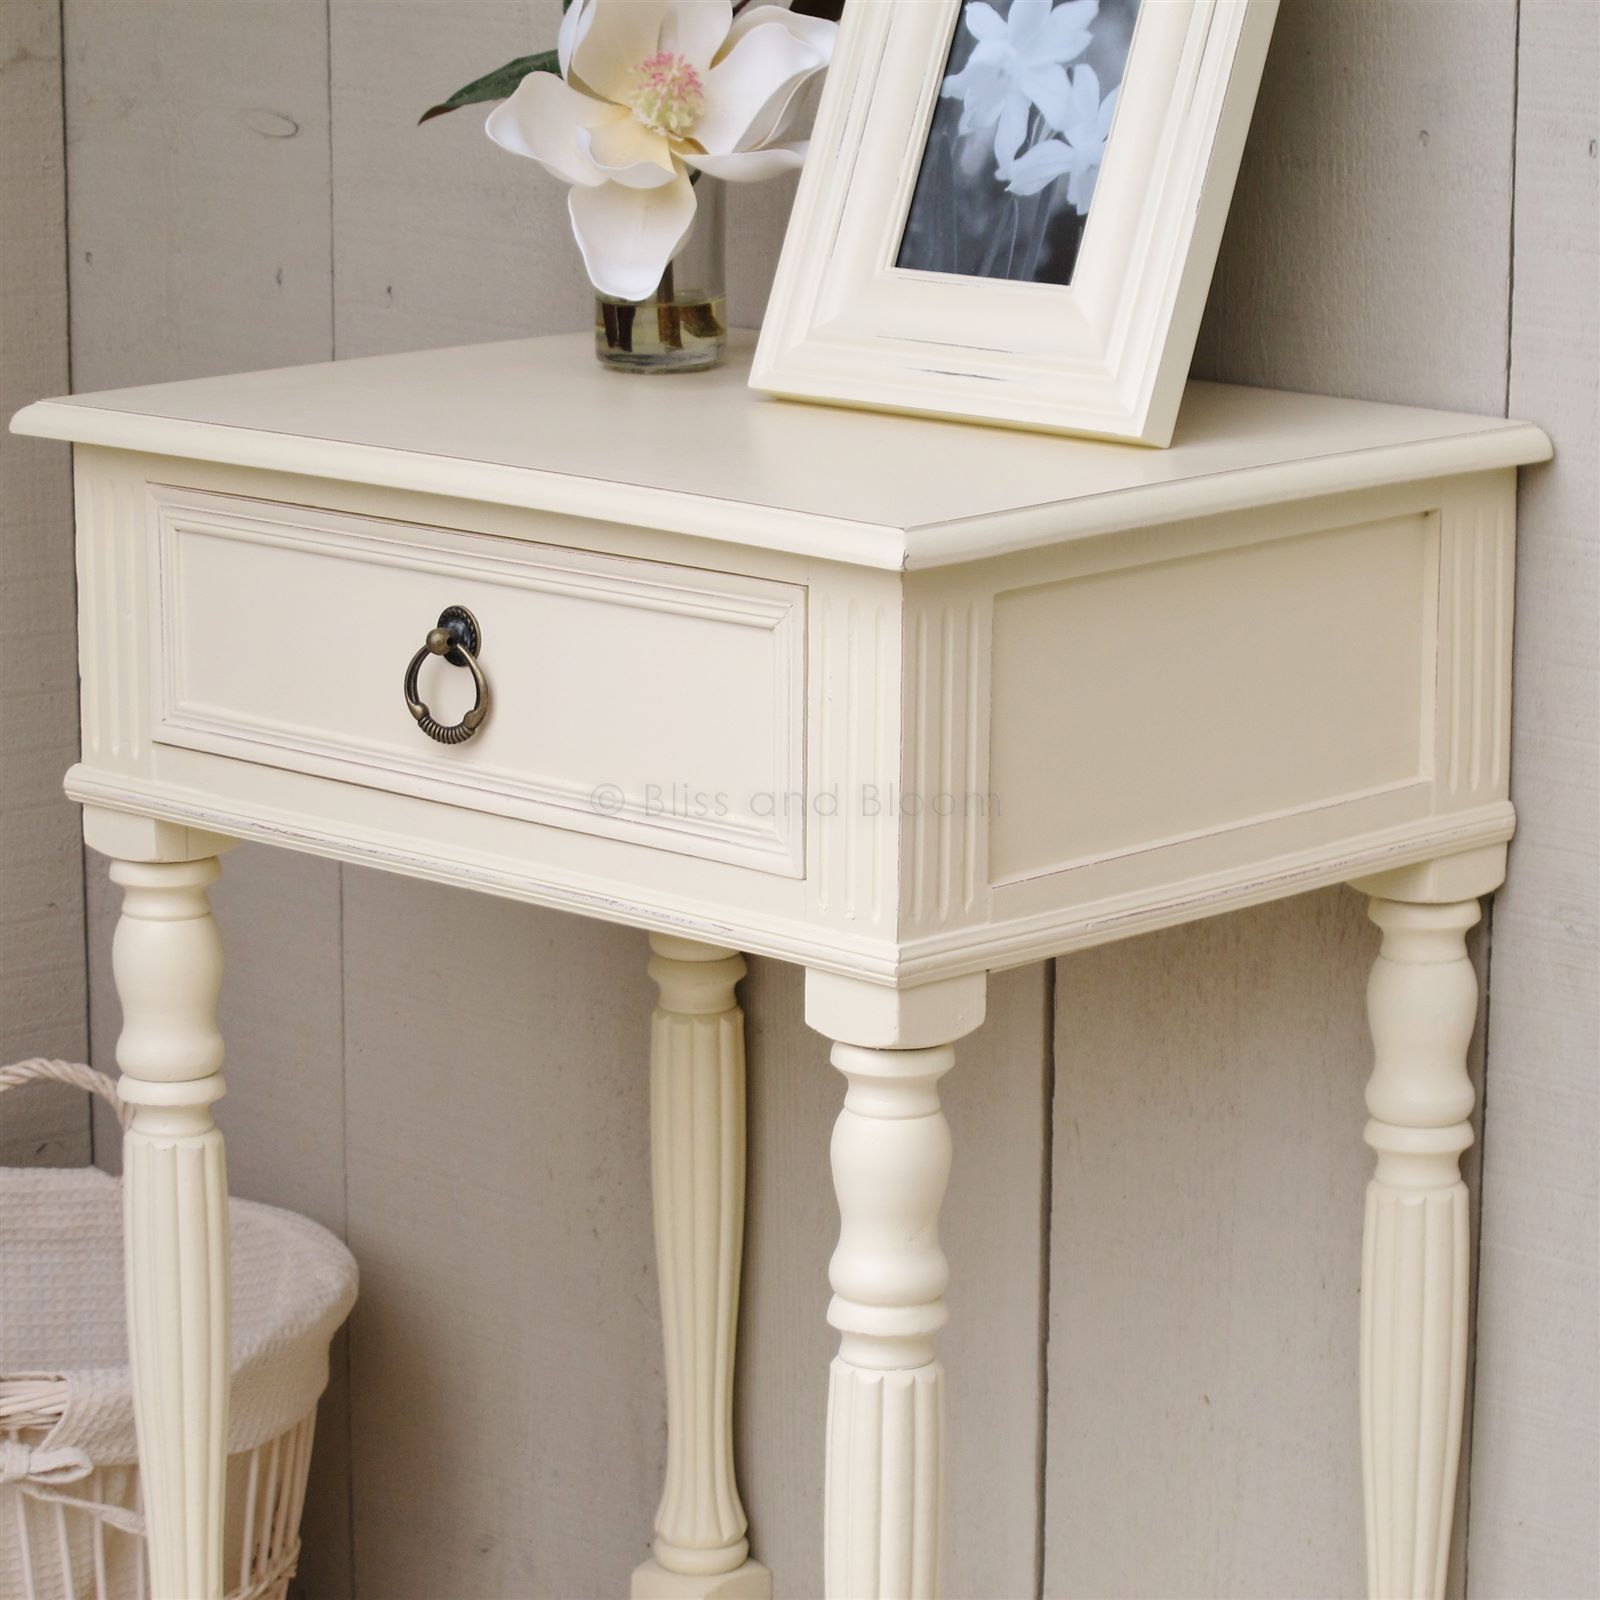 Cream Bedside Side Table Bliss And Bloom Ltd